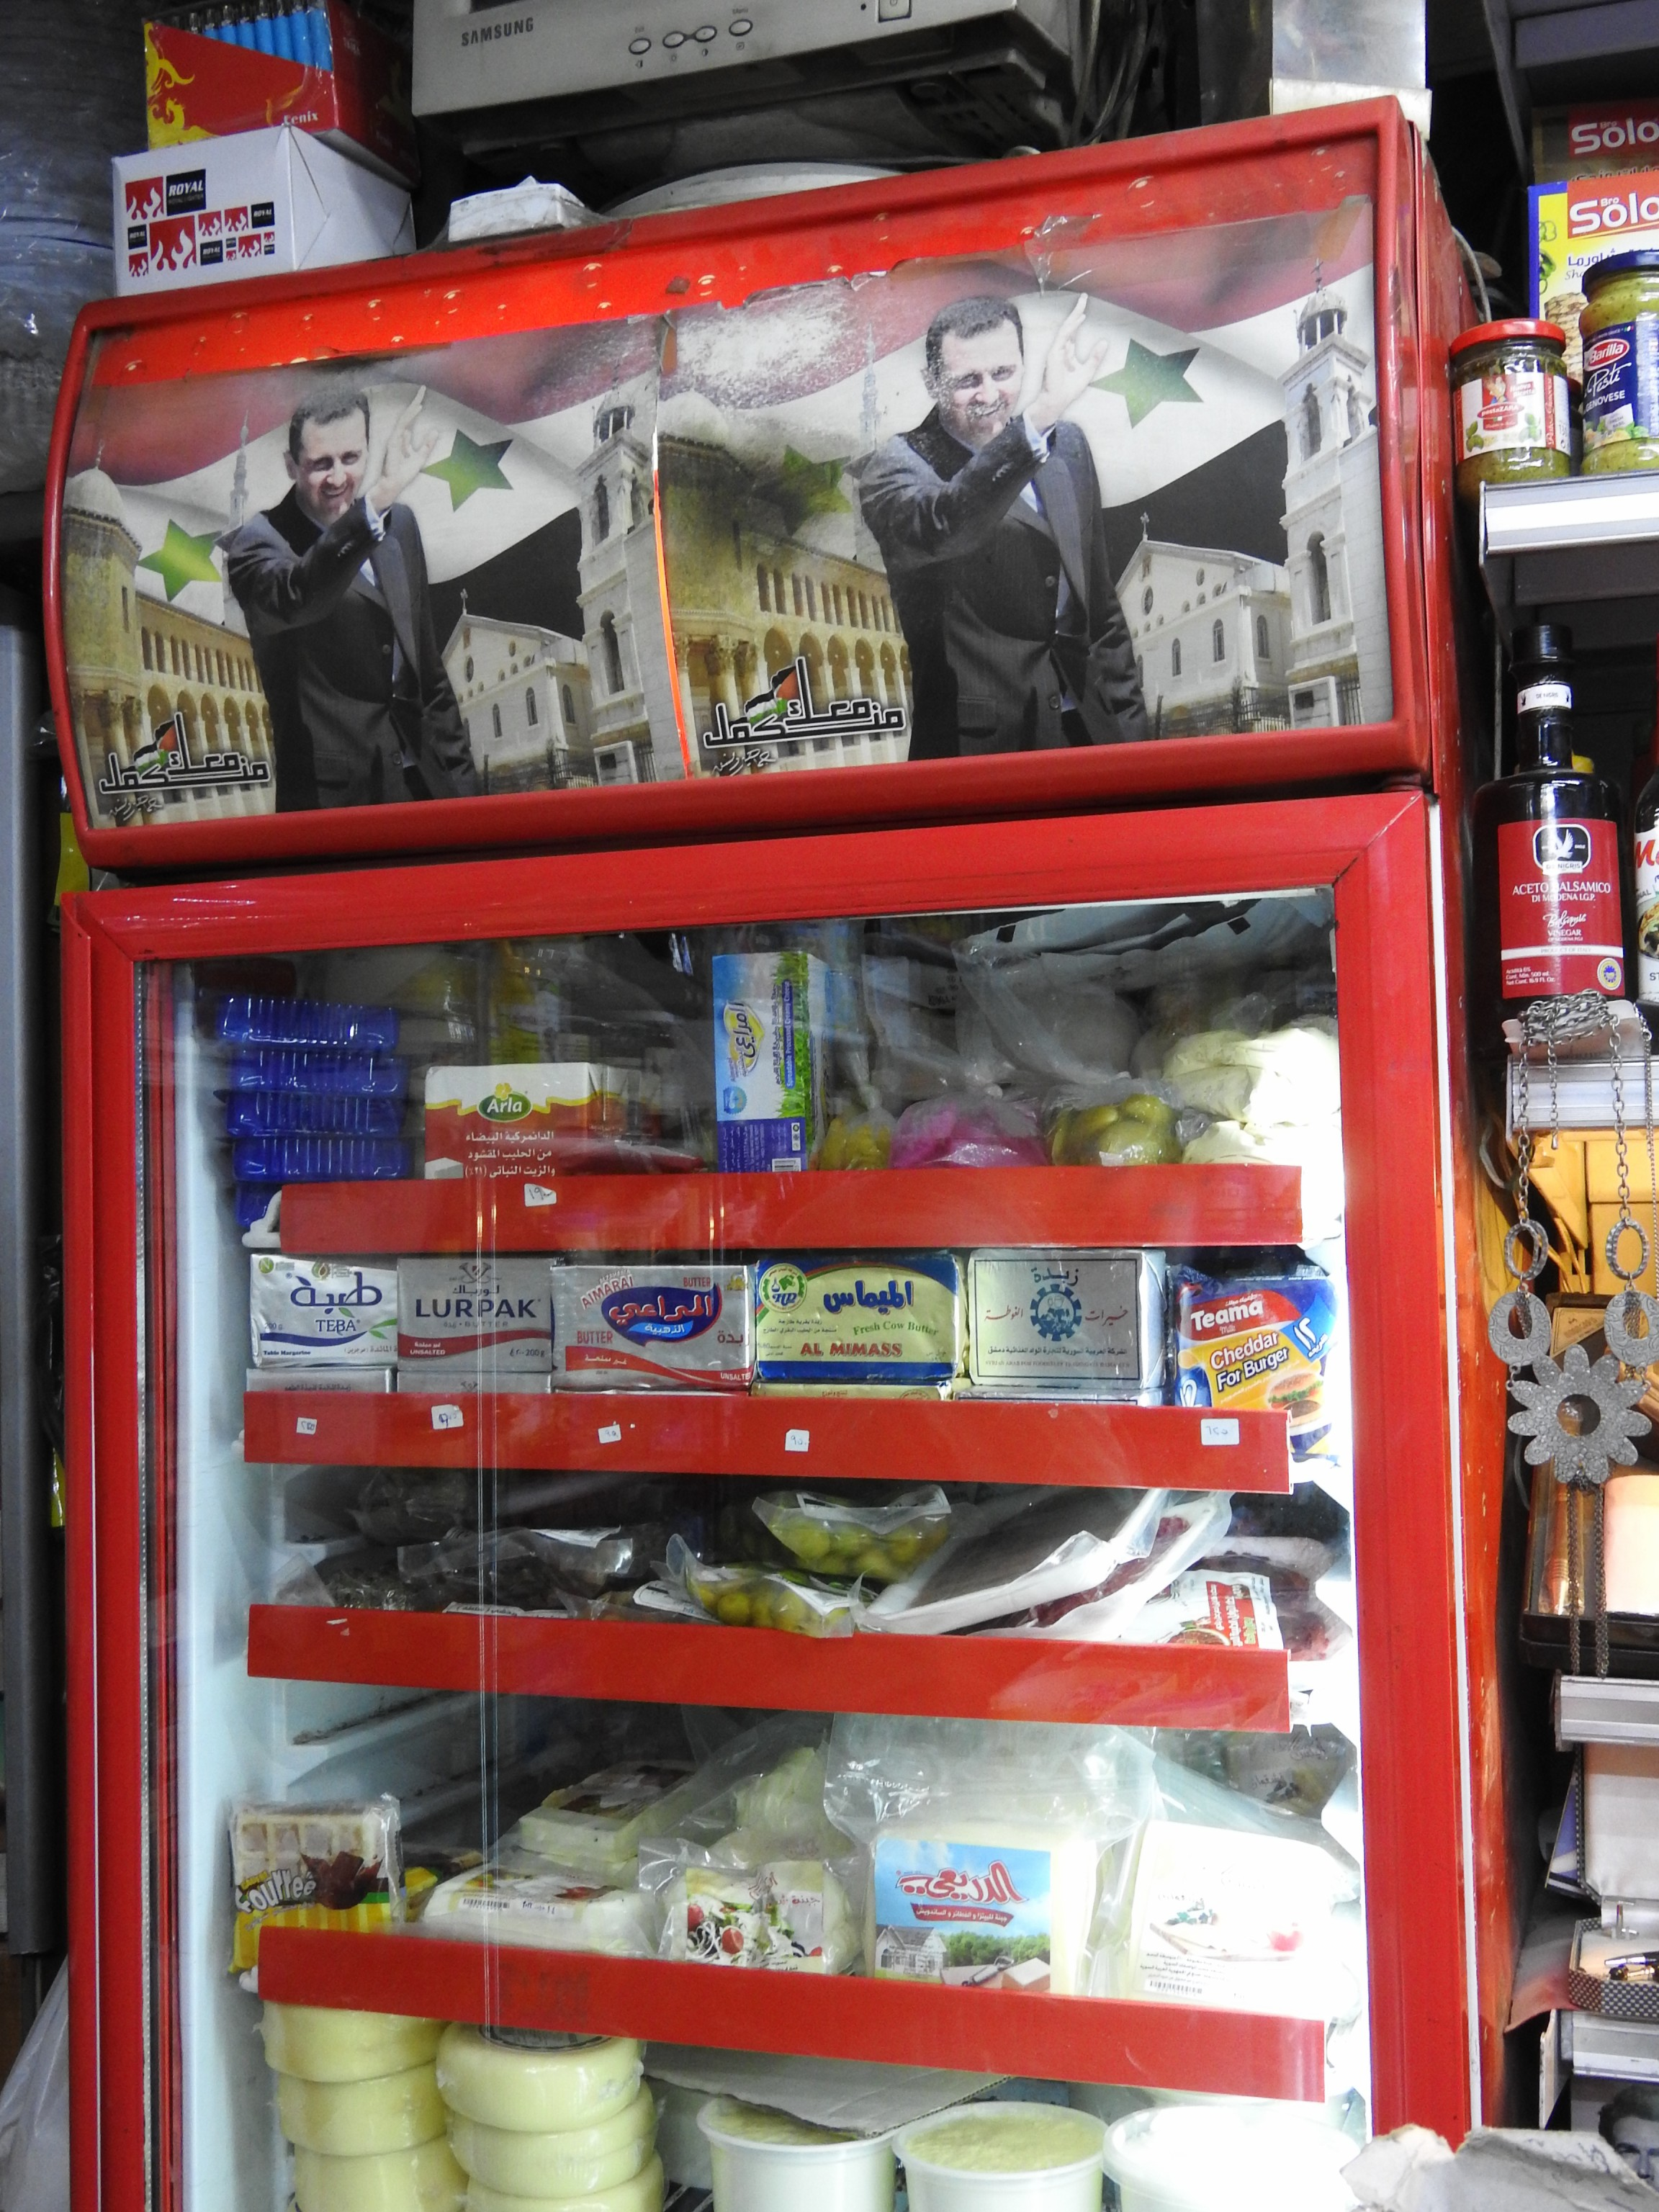 Stopping to buy water in an Old City shop, the owner's only issue with me taking a photograph of his fridge is that he wants to dust off the photos of President Assad a bit first, apologizing that they are old, from well-before the current crisis.